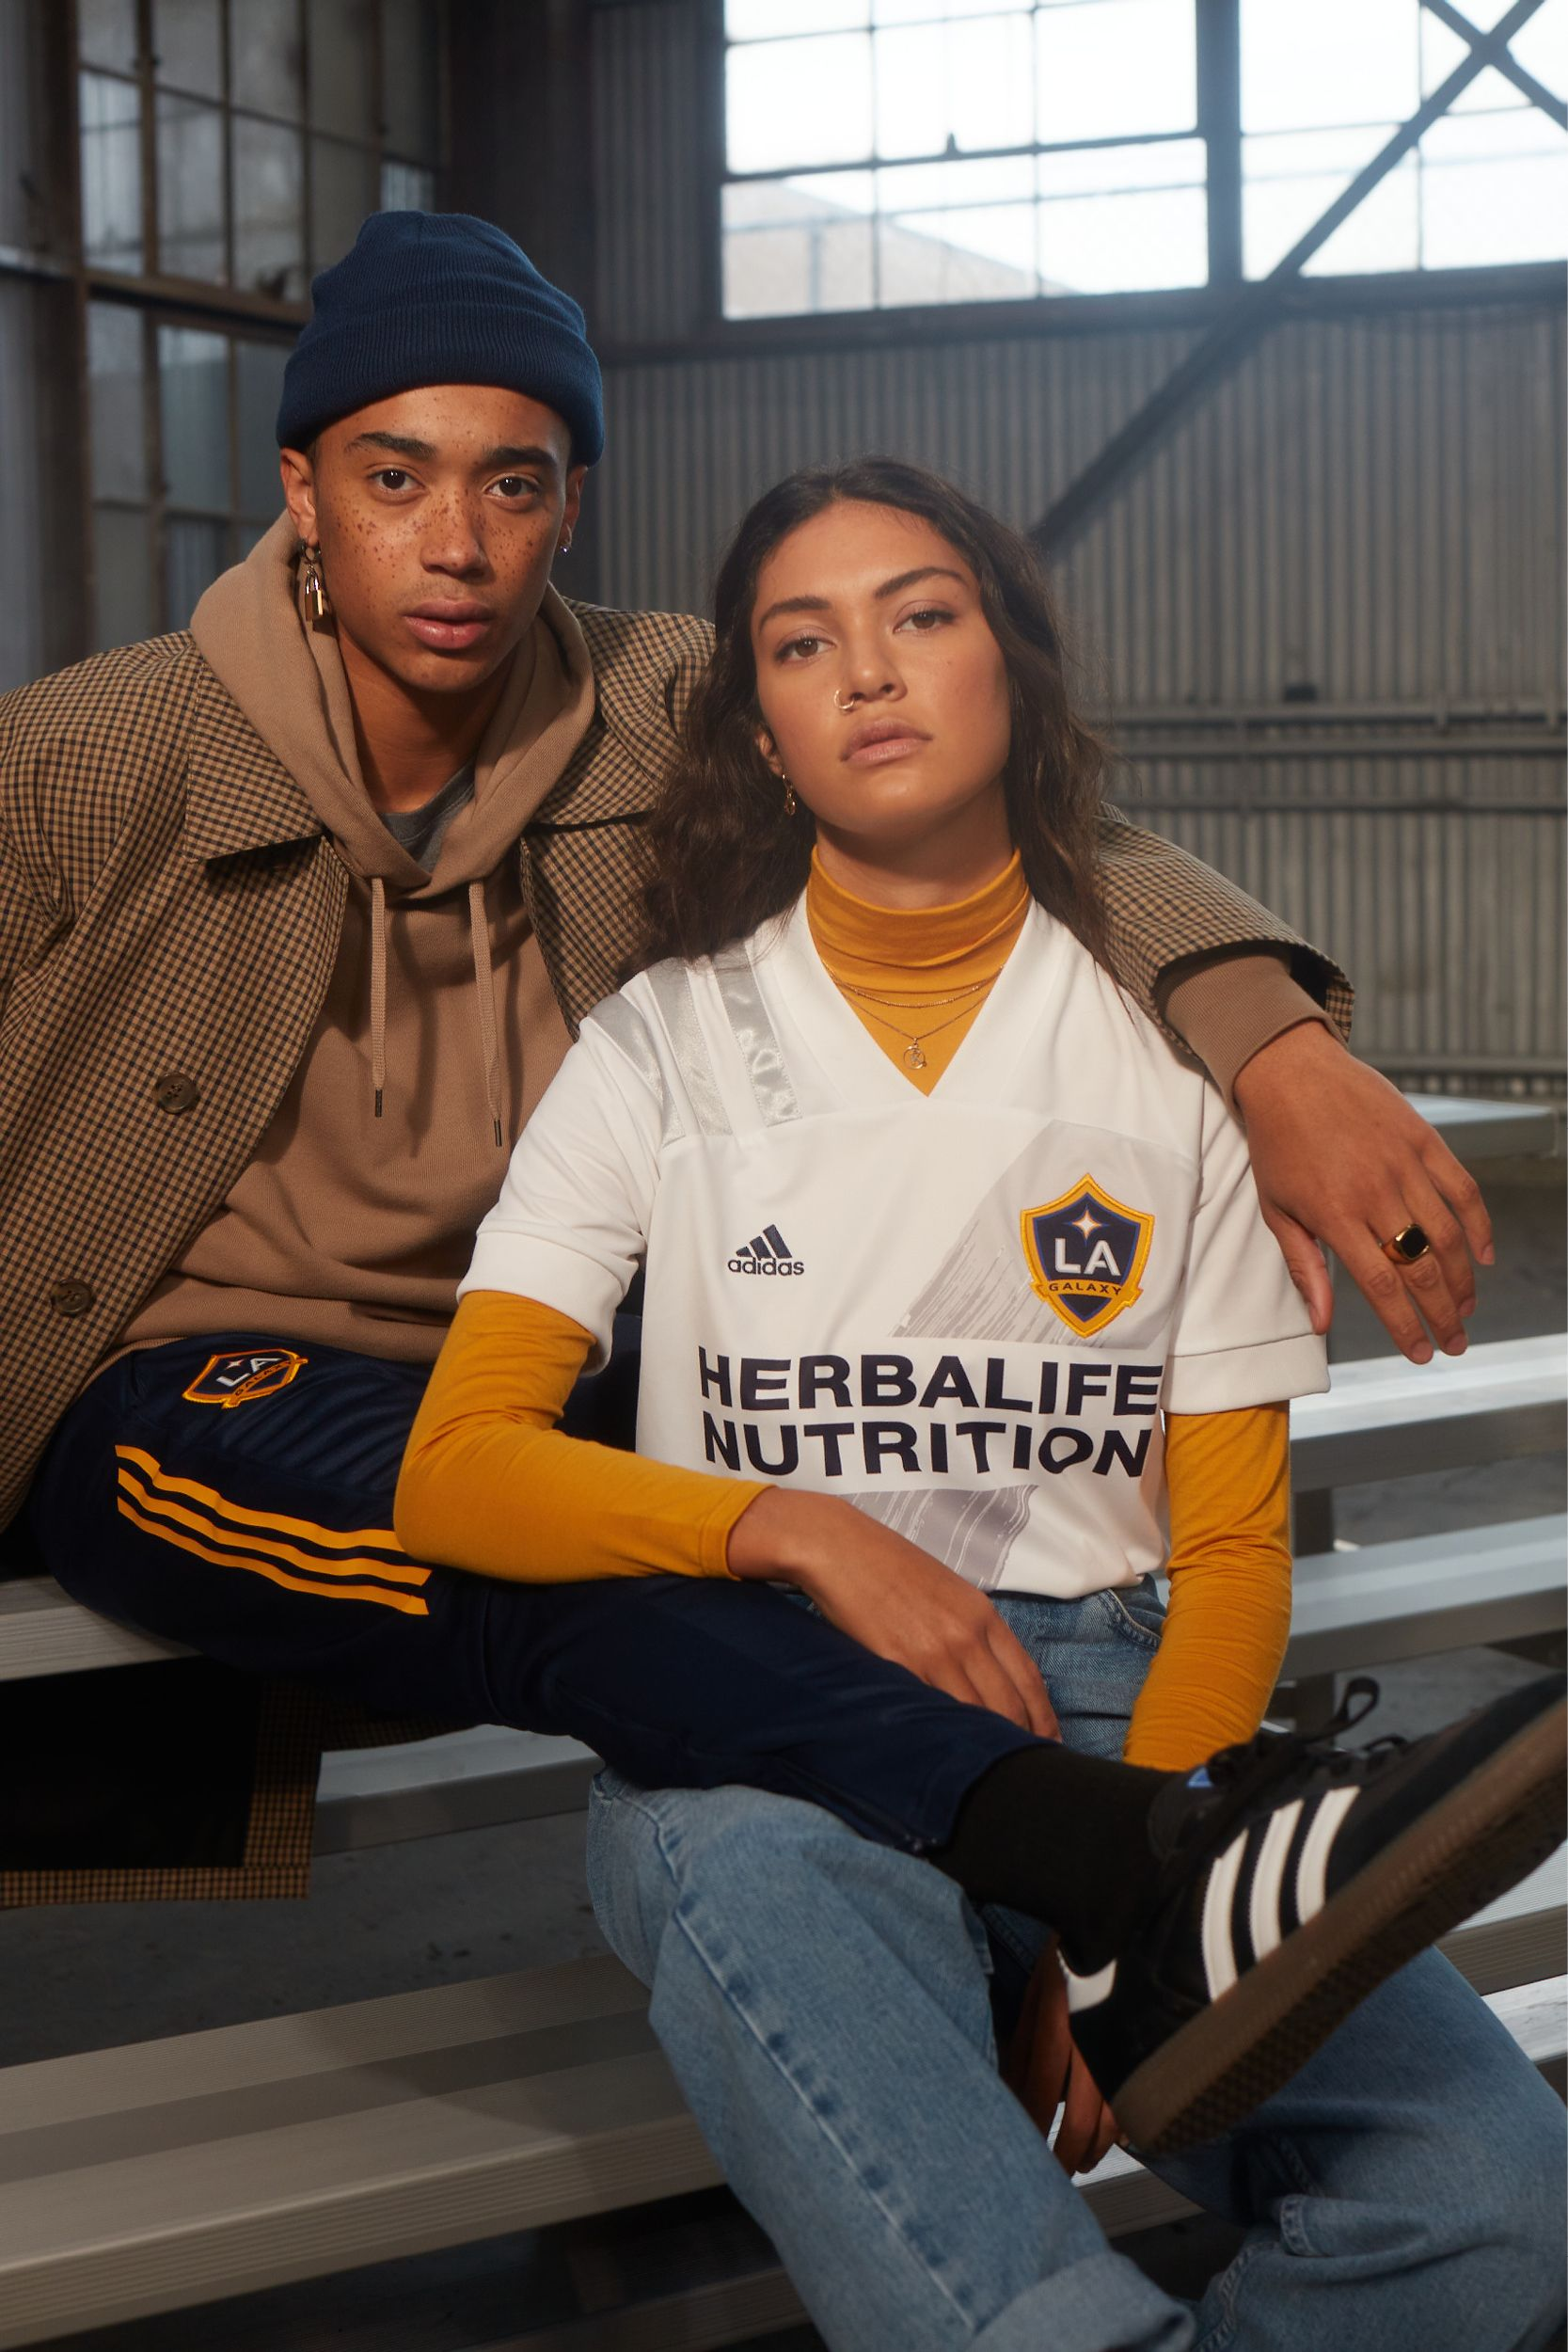 The Authentic 2020 Adidas X Major League Soccer Mls Jersey For La Galaxy Celebrates 25 Years Of Excellence In Los Angeles Wit In 2020 Adidas Outfit Fashion Club Tops